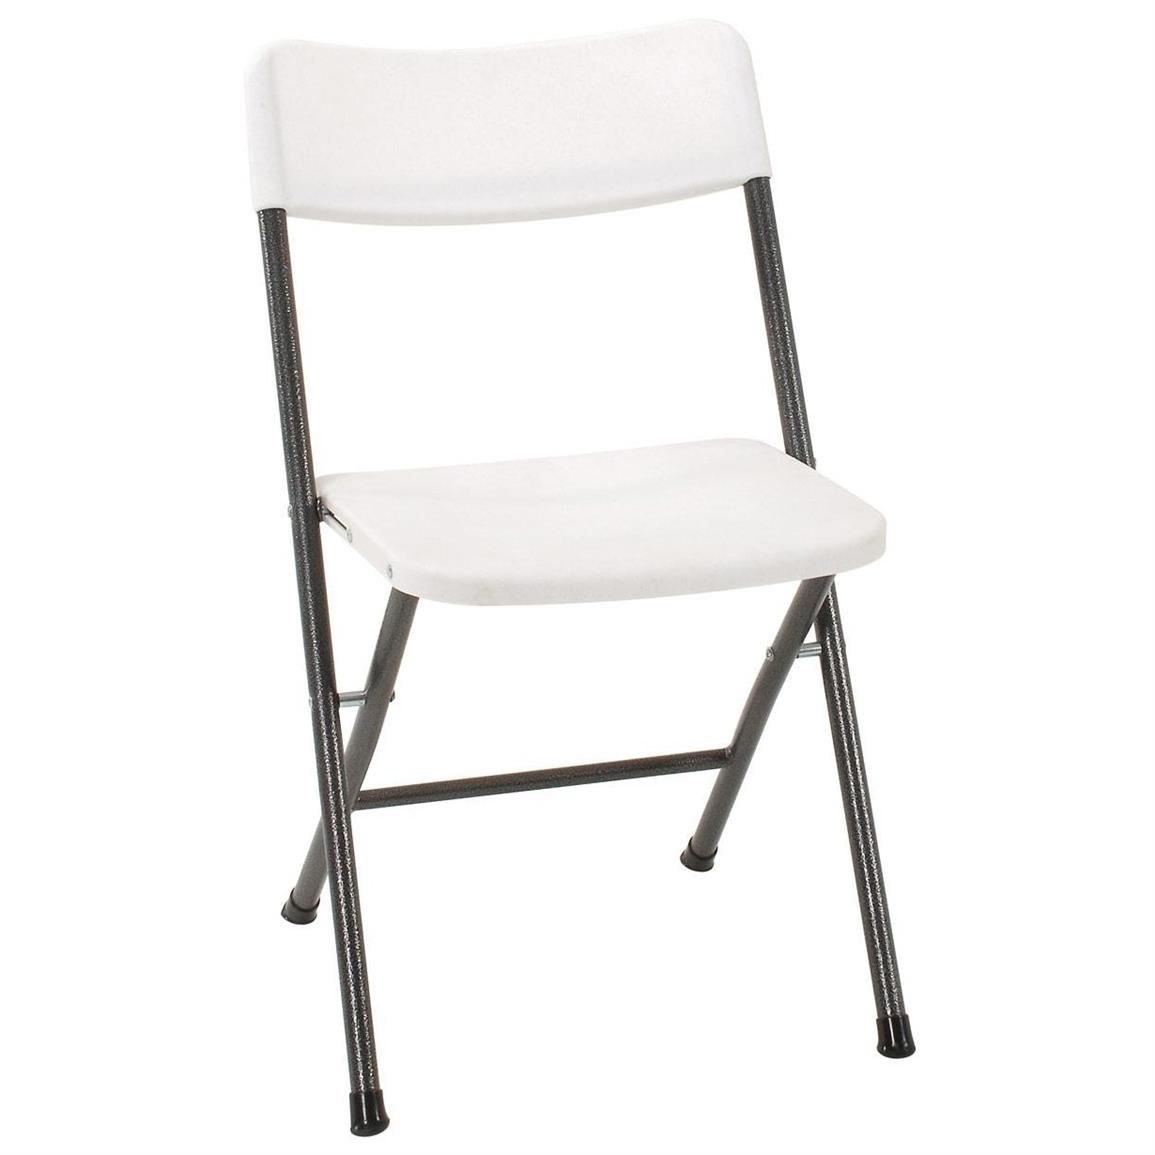 Folding White Chairs 4 Pk Of Cosco White Resin Folding Chairs 618779